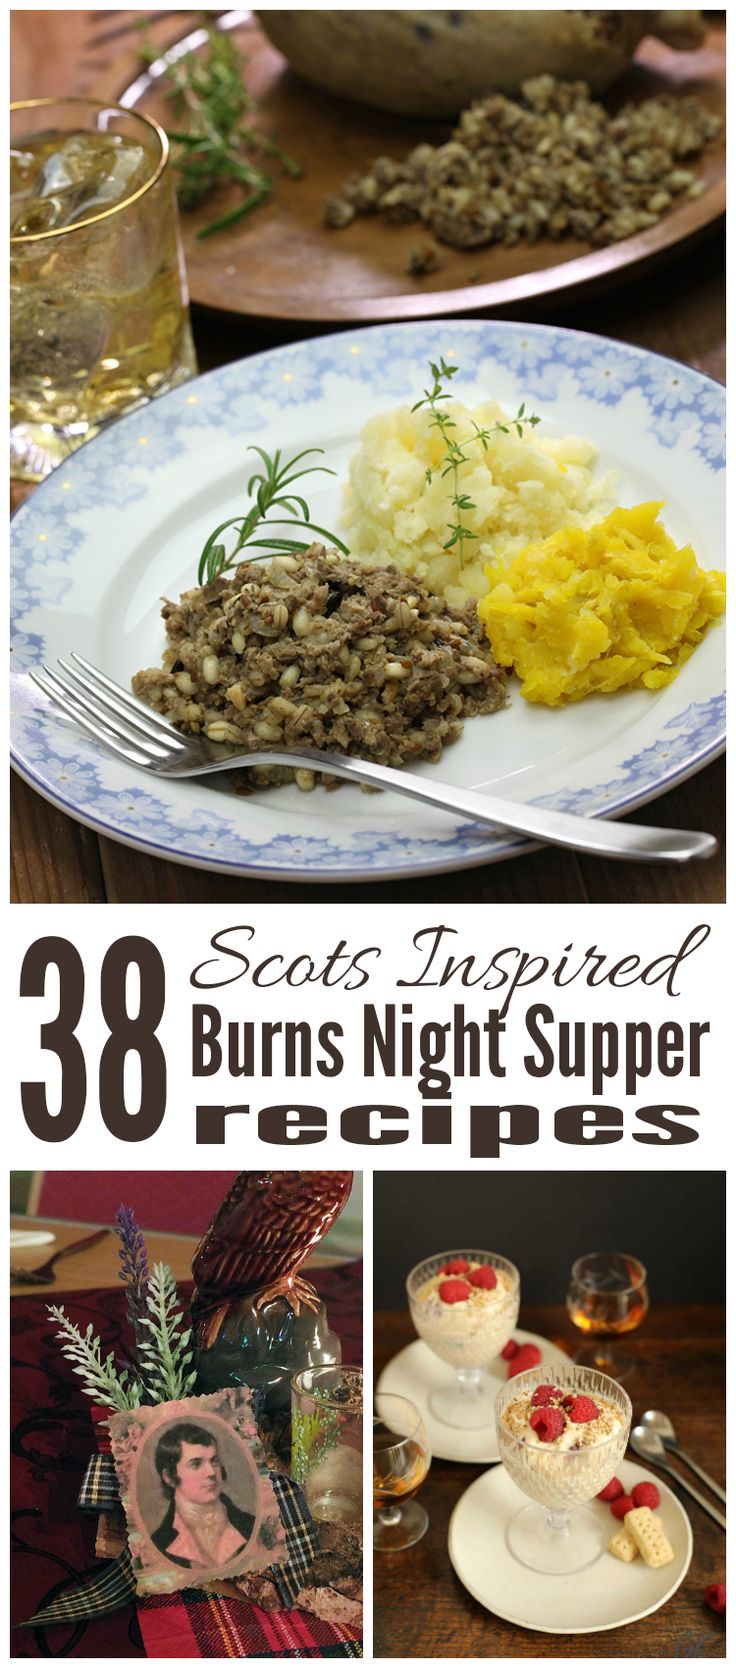 Are you hosting a Burns Night Supper? I've gathered together 38 of the finest Scots inspired recipes to help you create your menu!